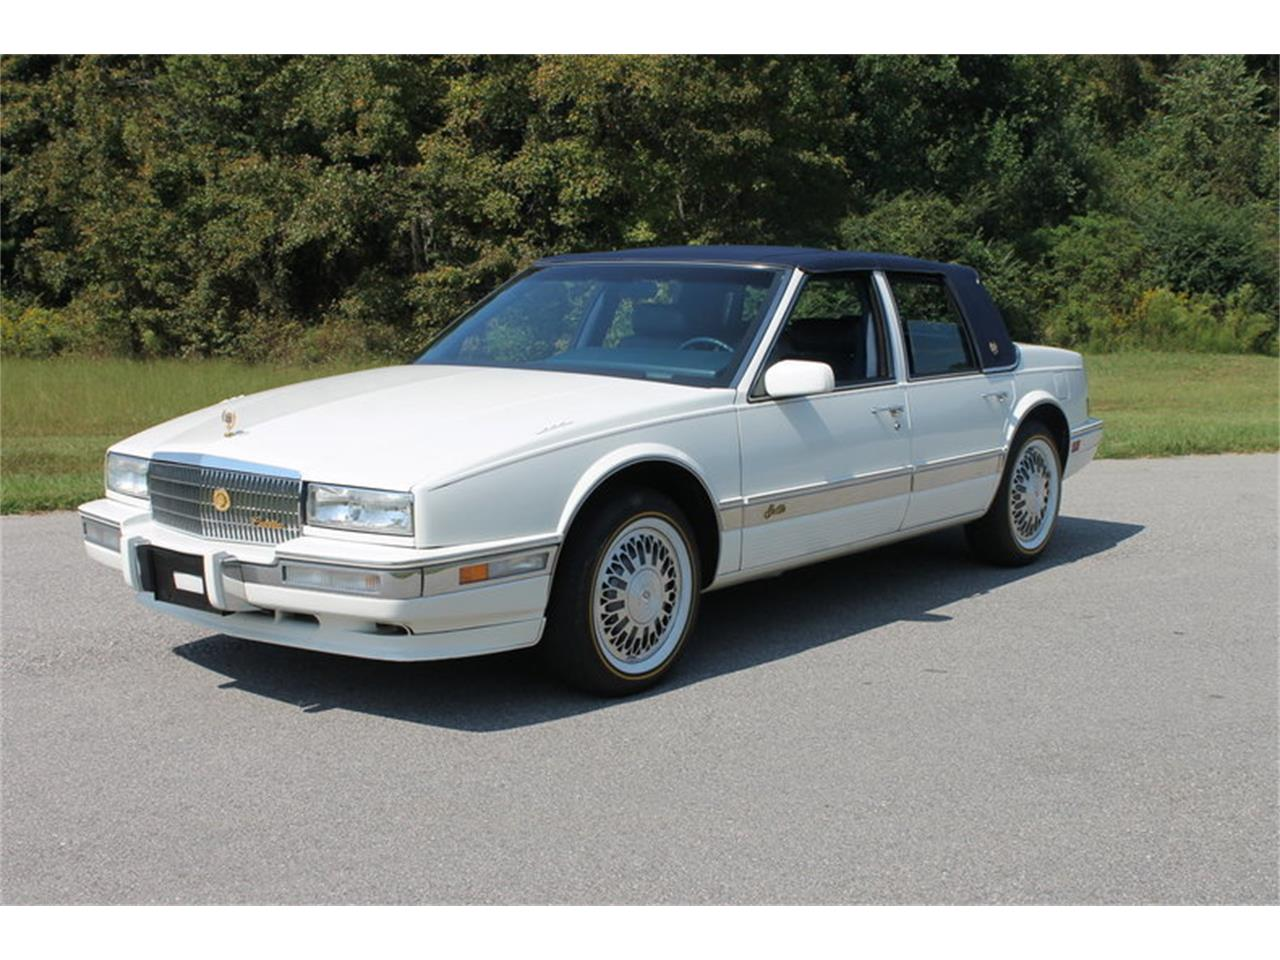 1991 cadillac seville sts sedan for sale classiccars com cc 1062907 1991 cadillac seville sts sedan for